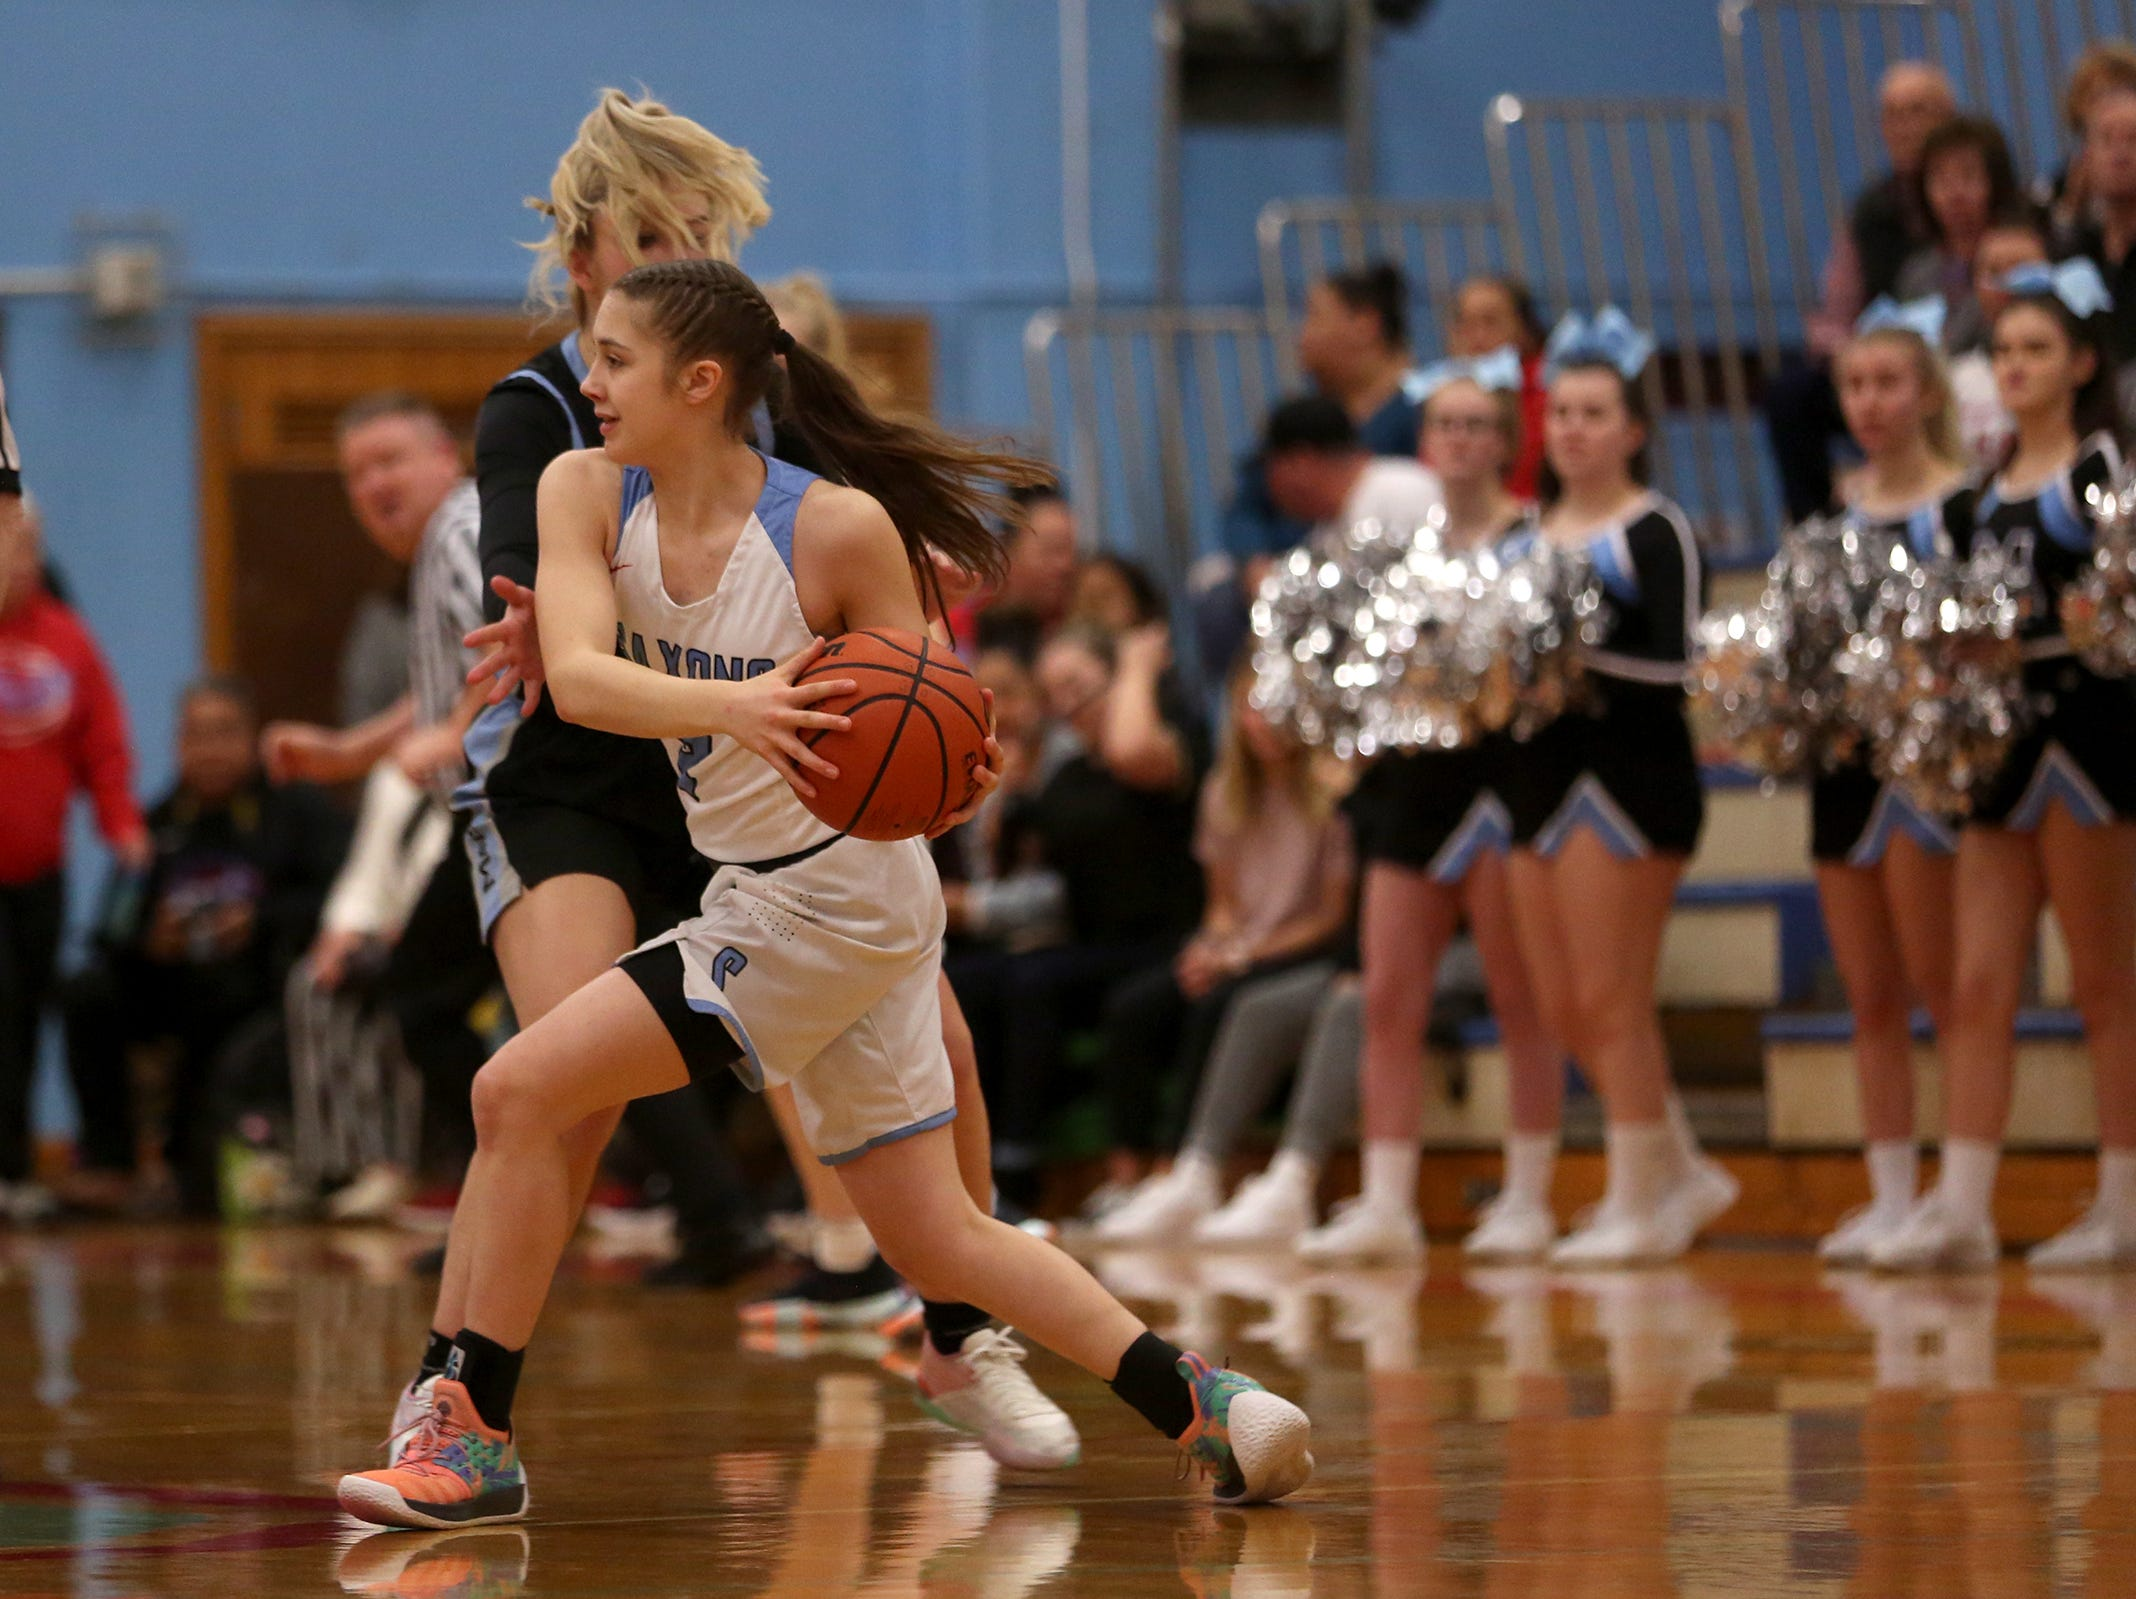 South Salem's Hilary James (2) blows by Mountainside's defense during the South Salem vs. Mountainside girls basketball OSAA playoff game in Salem on Thursday, Feb. 28, 2019.